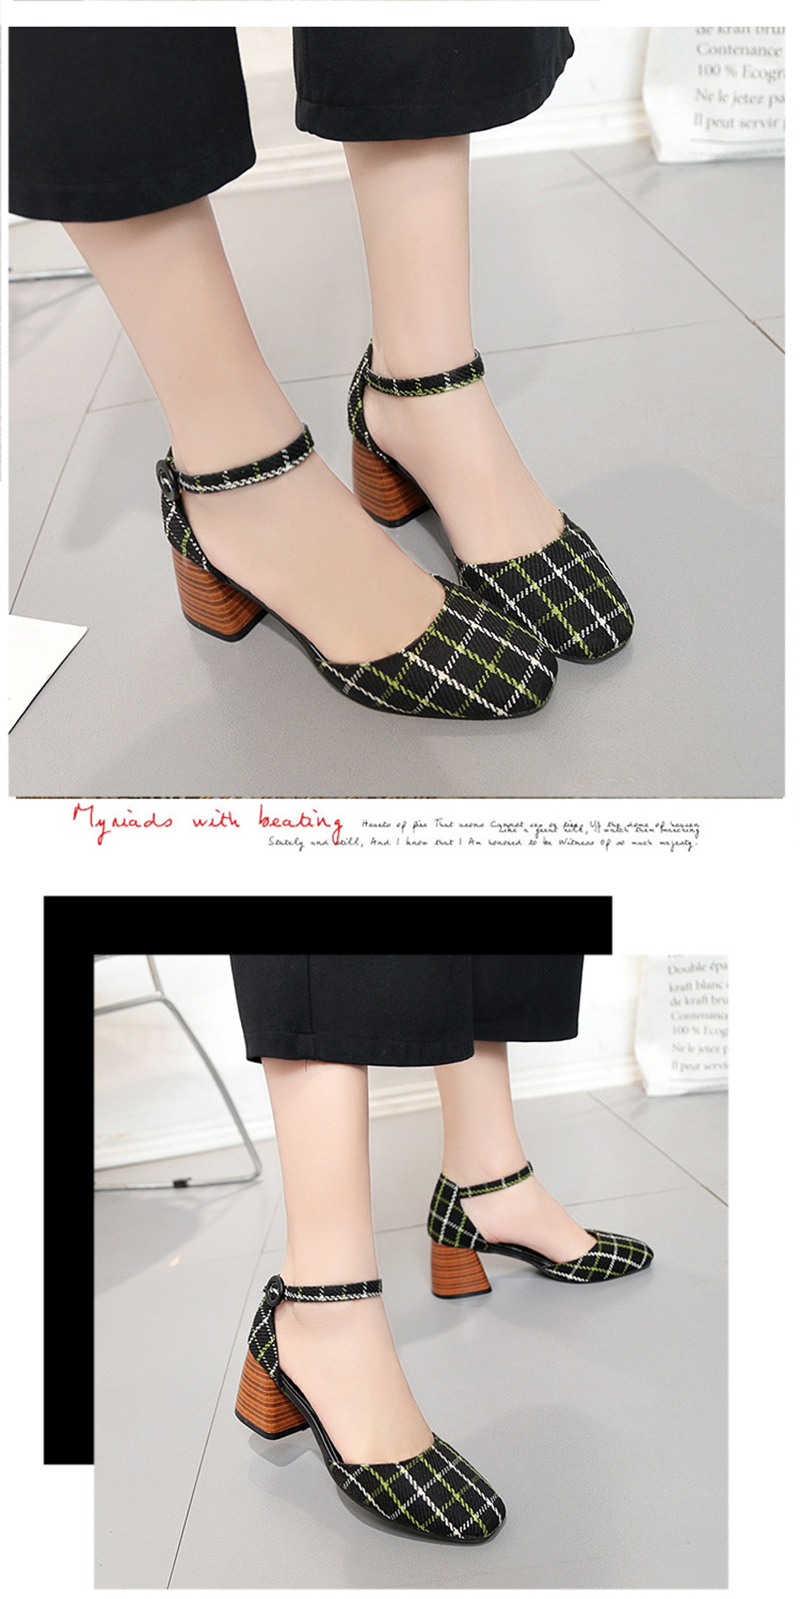 High Heels Shoes Women Pumps Square Toe Summer Sandals Thick Heels Plaid Casual Good Quality Female Office Shoes Comfortable 10